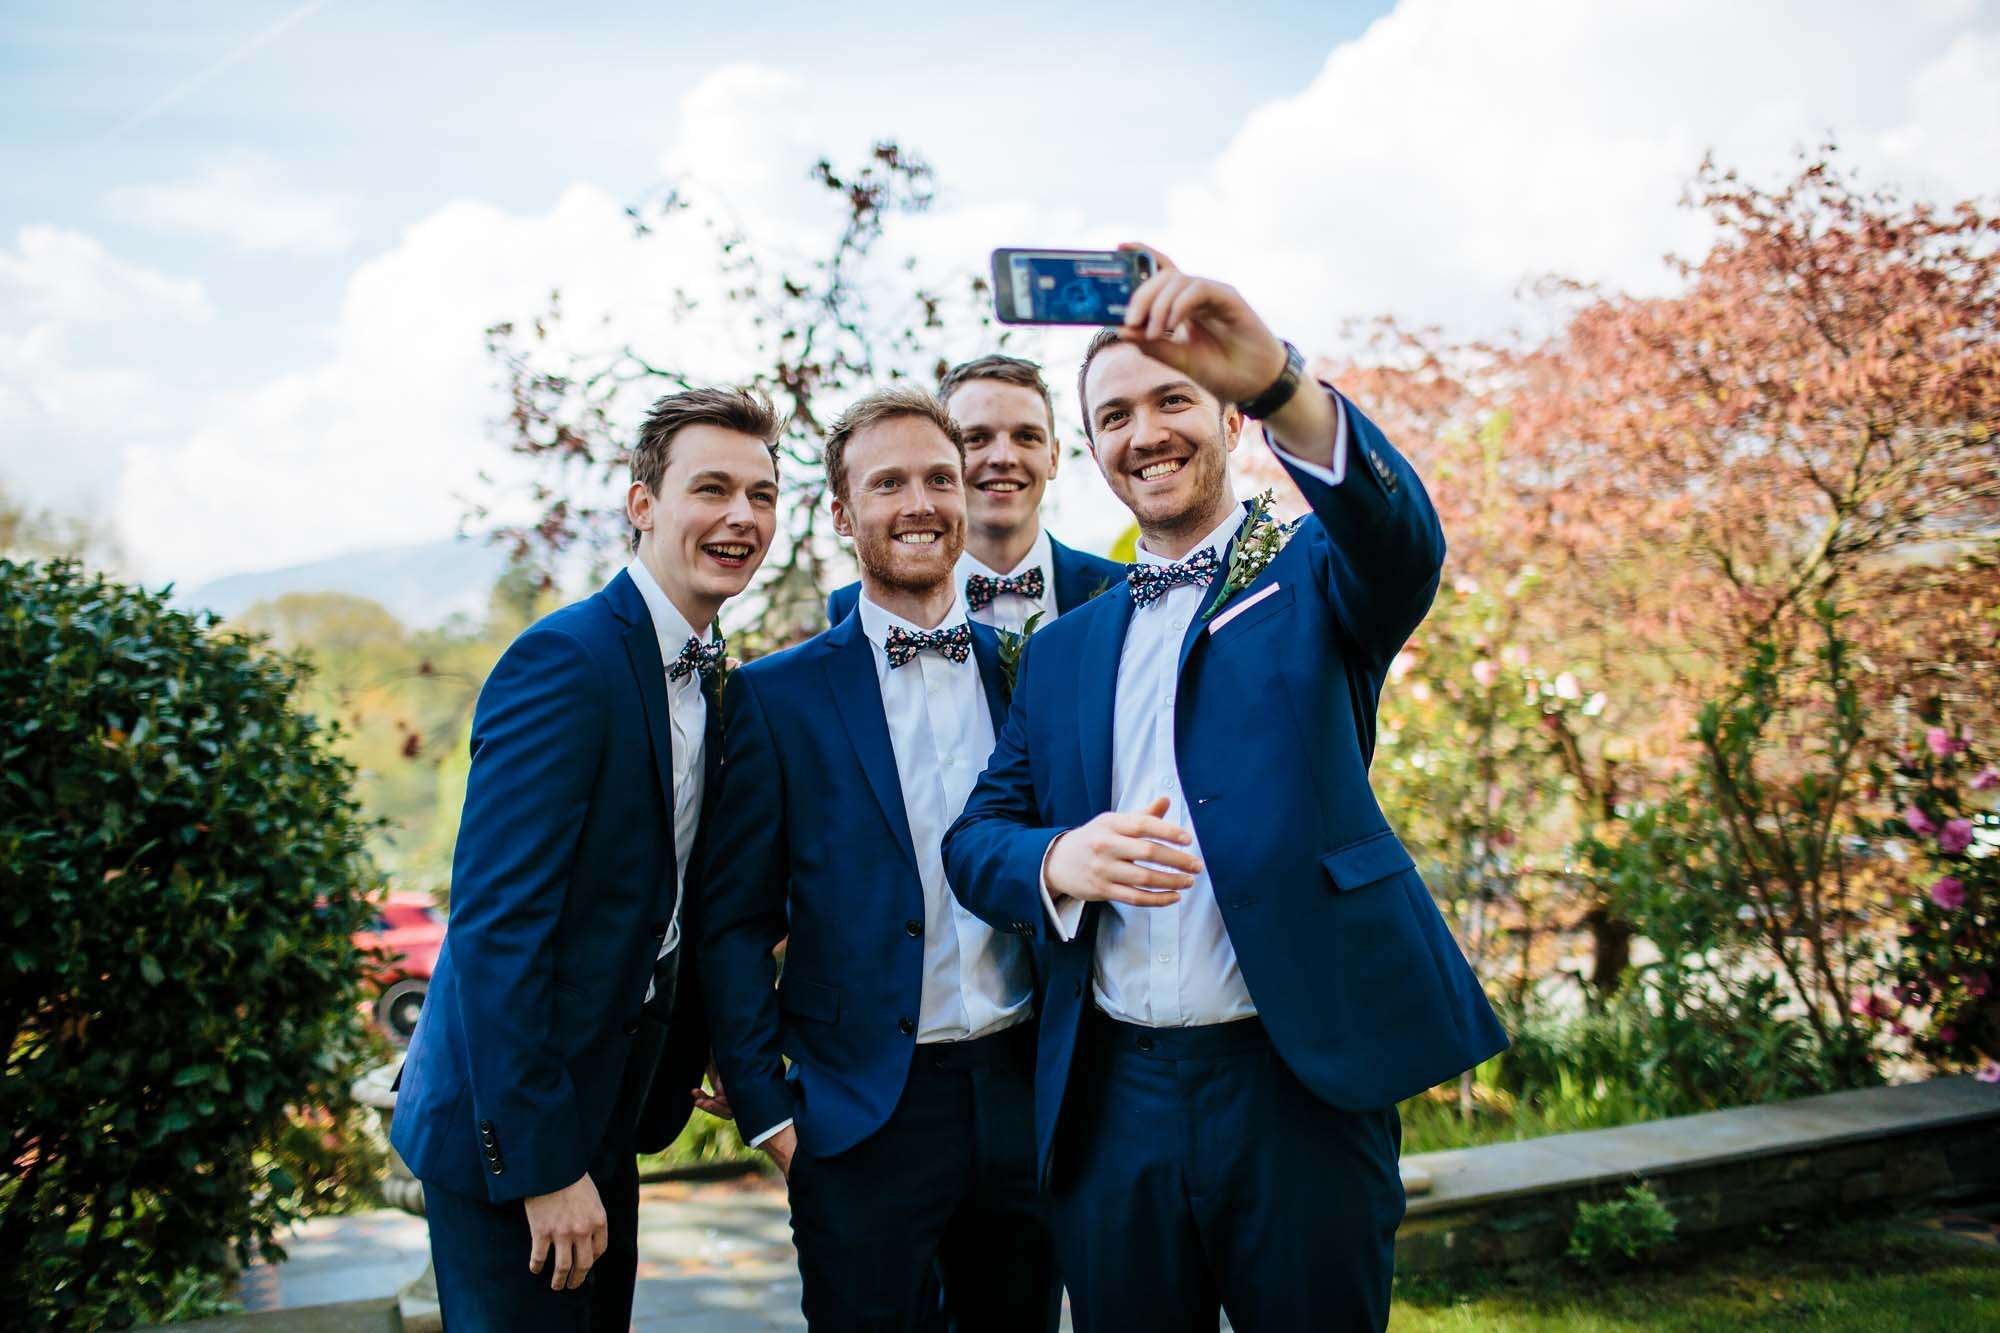 Guests taking a selfie at a wedding